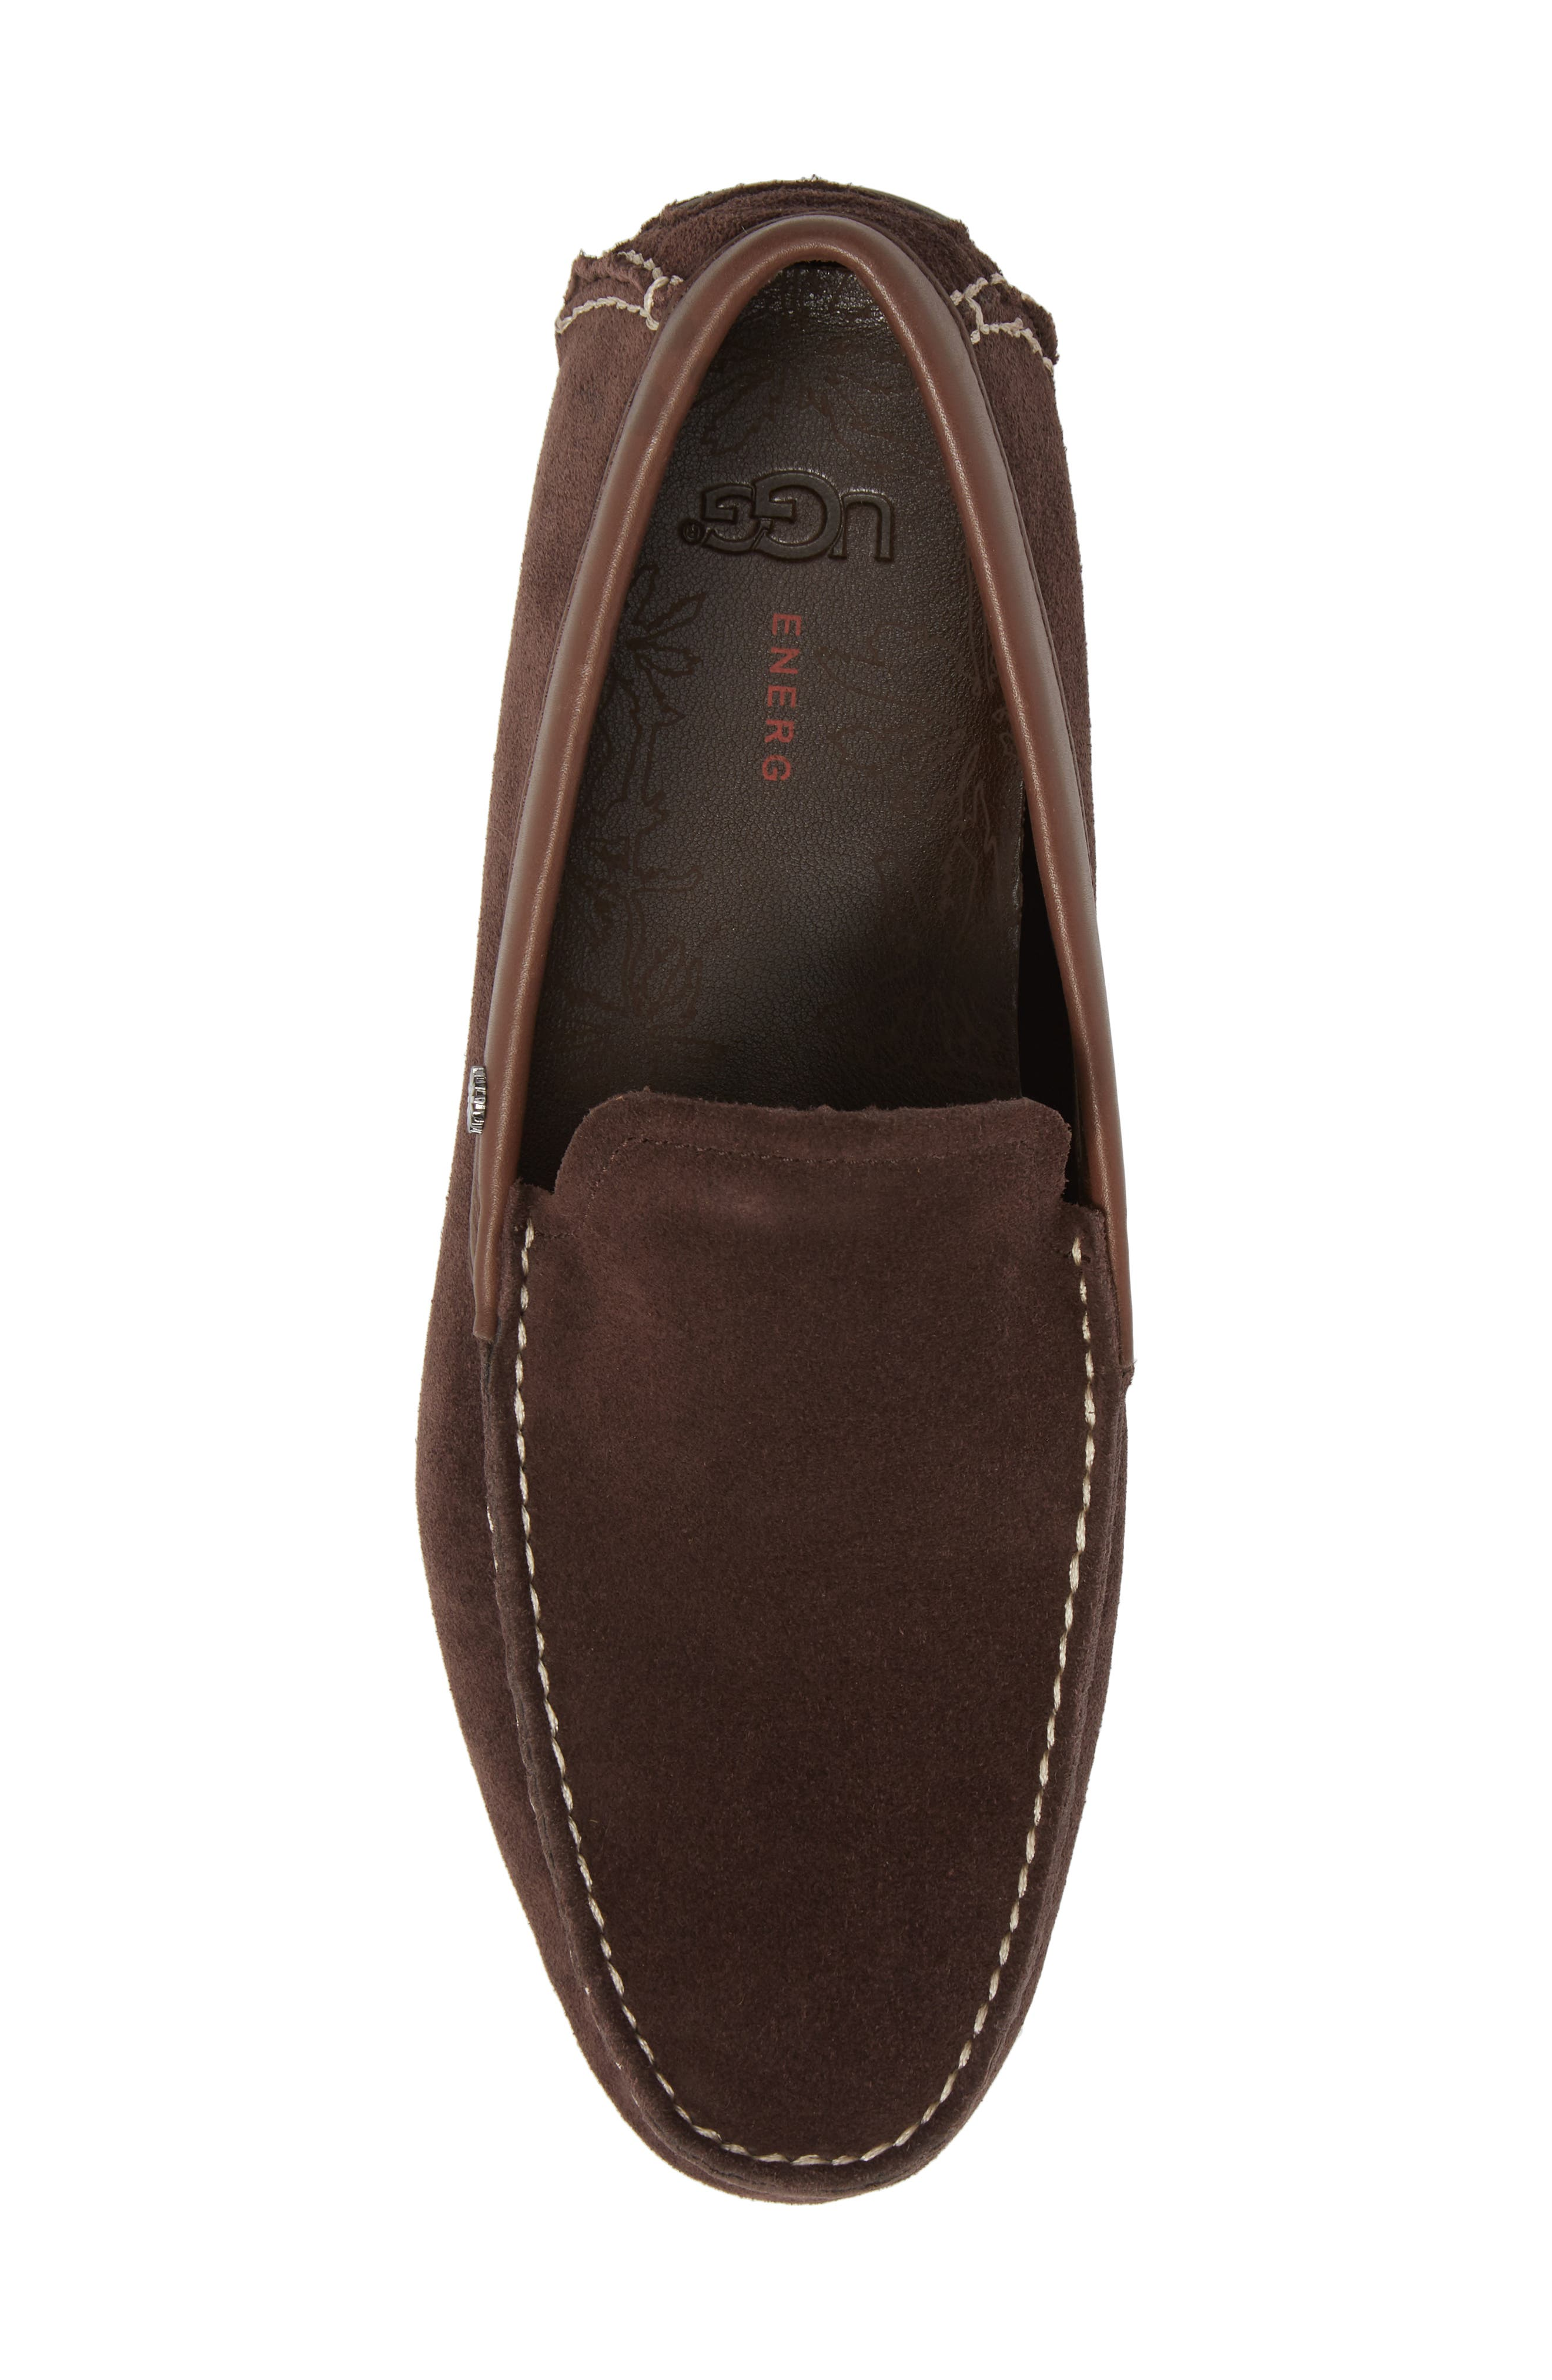 Bel-Air Driving Moccasin,                             Alternate thumbnail 5, color,                             Stout Leather